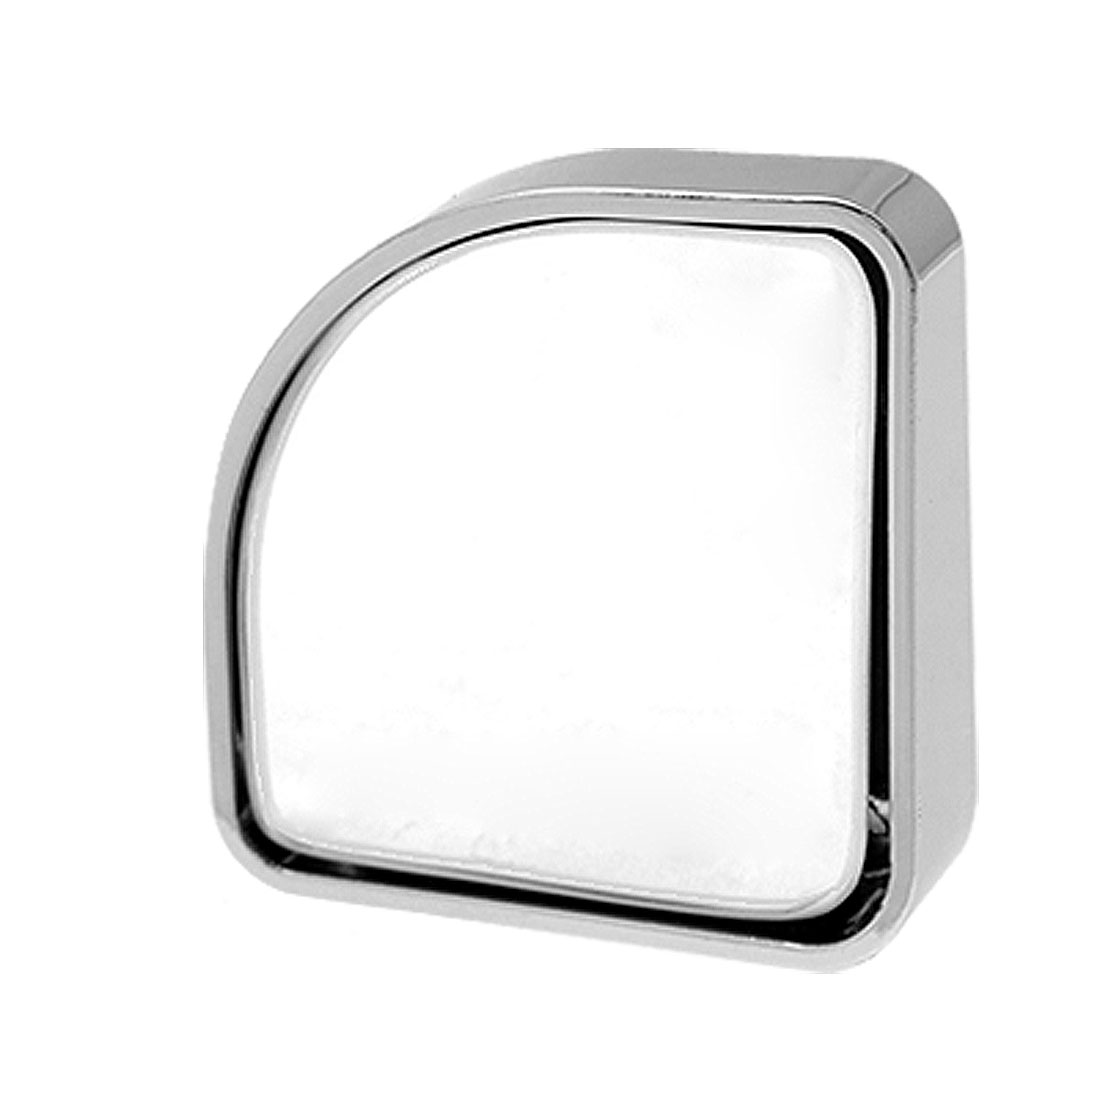 "2 Pcs Silver Tone Auxiliary Stick-on Blind Spot Mirrors 2"" x 2"""